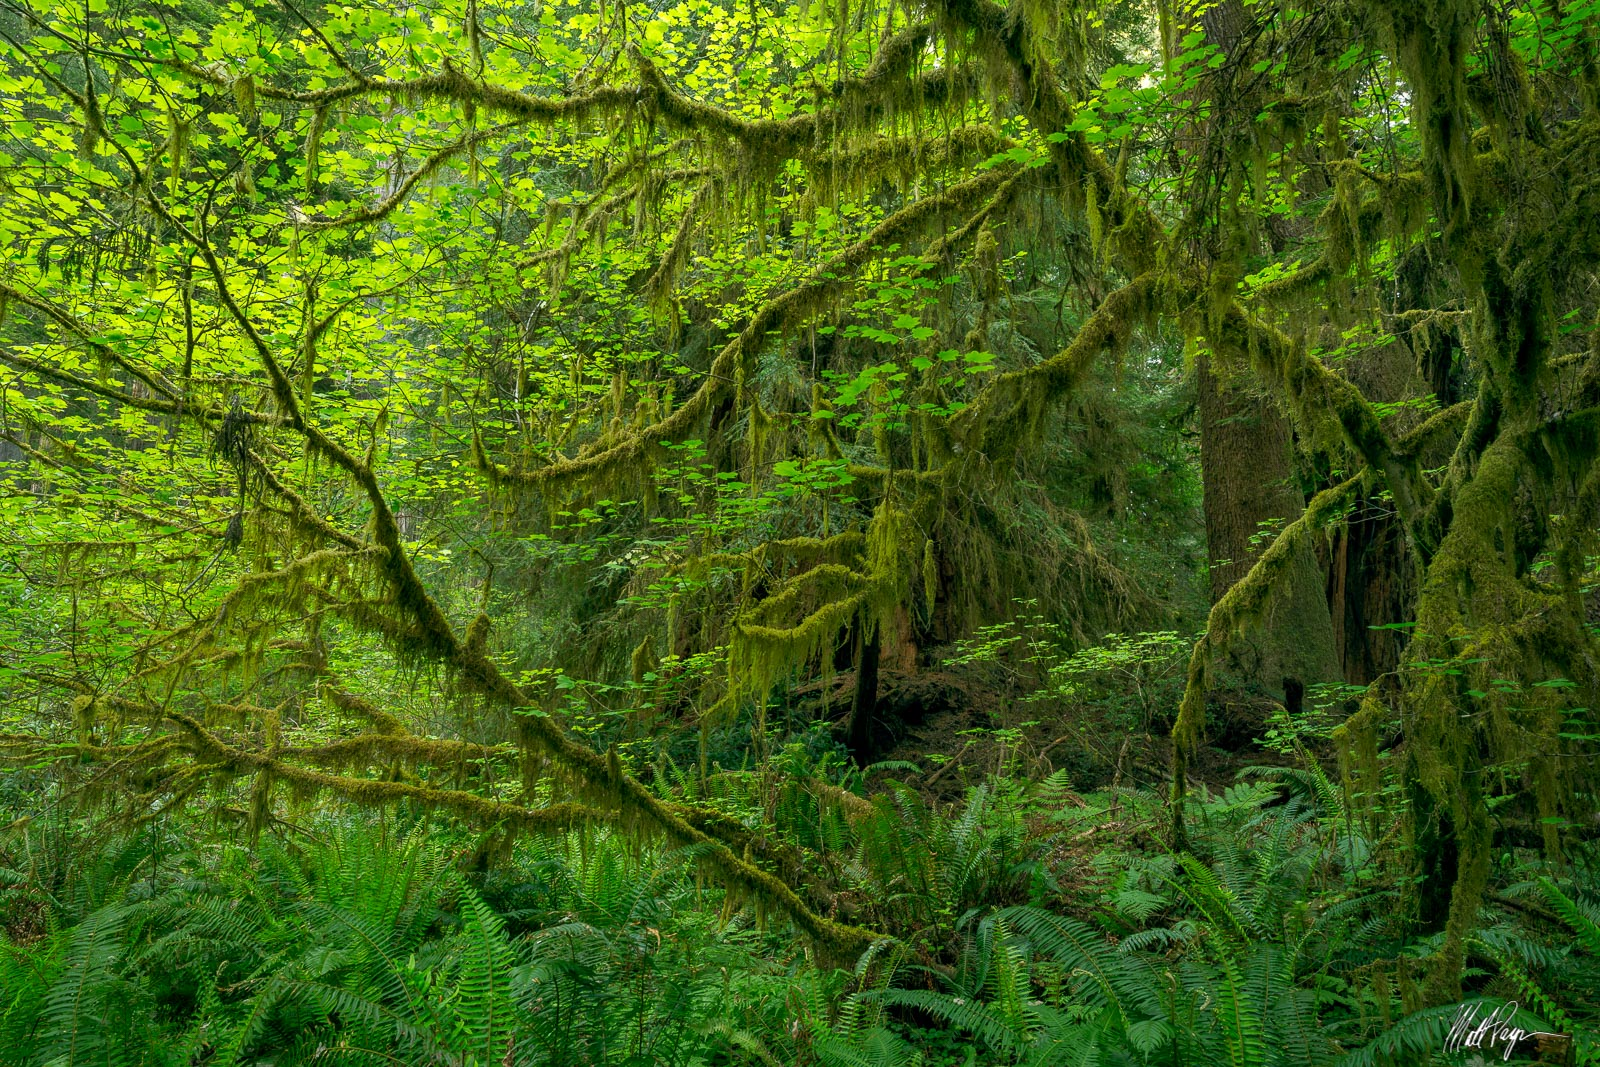 One of the most marvelous trees found within the Redwoods of California is the maple tree. The lush green leaves of the maple...